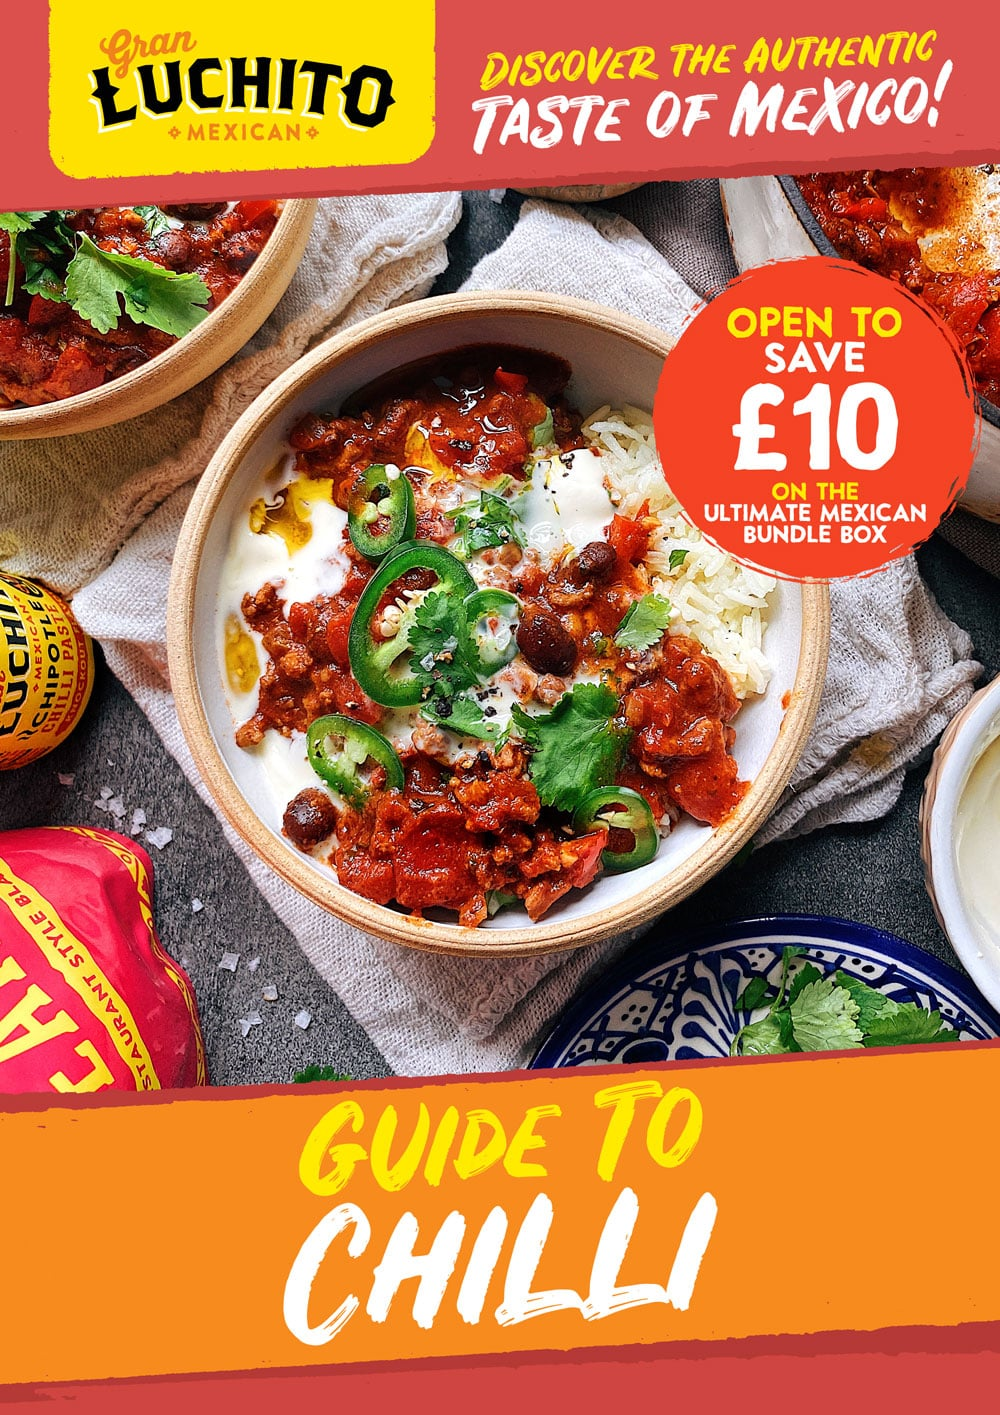 Sign up for our free Guide to Chilli